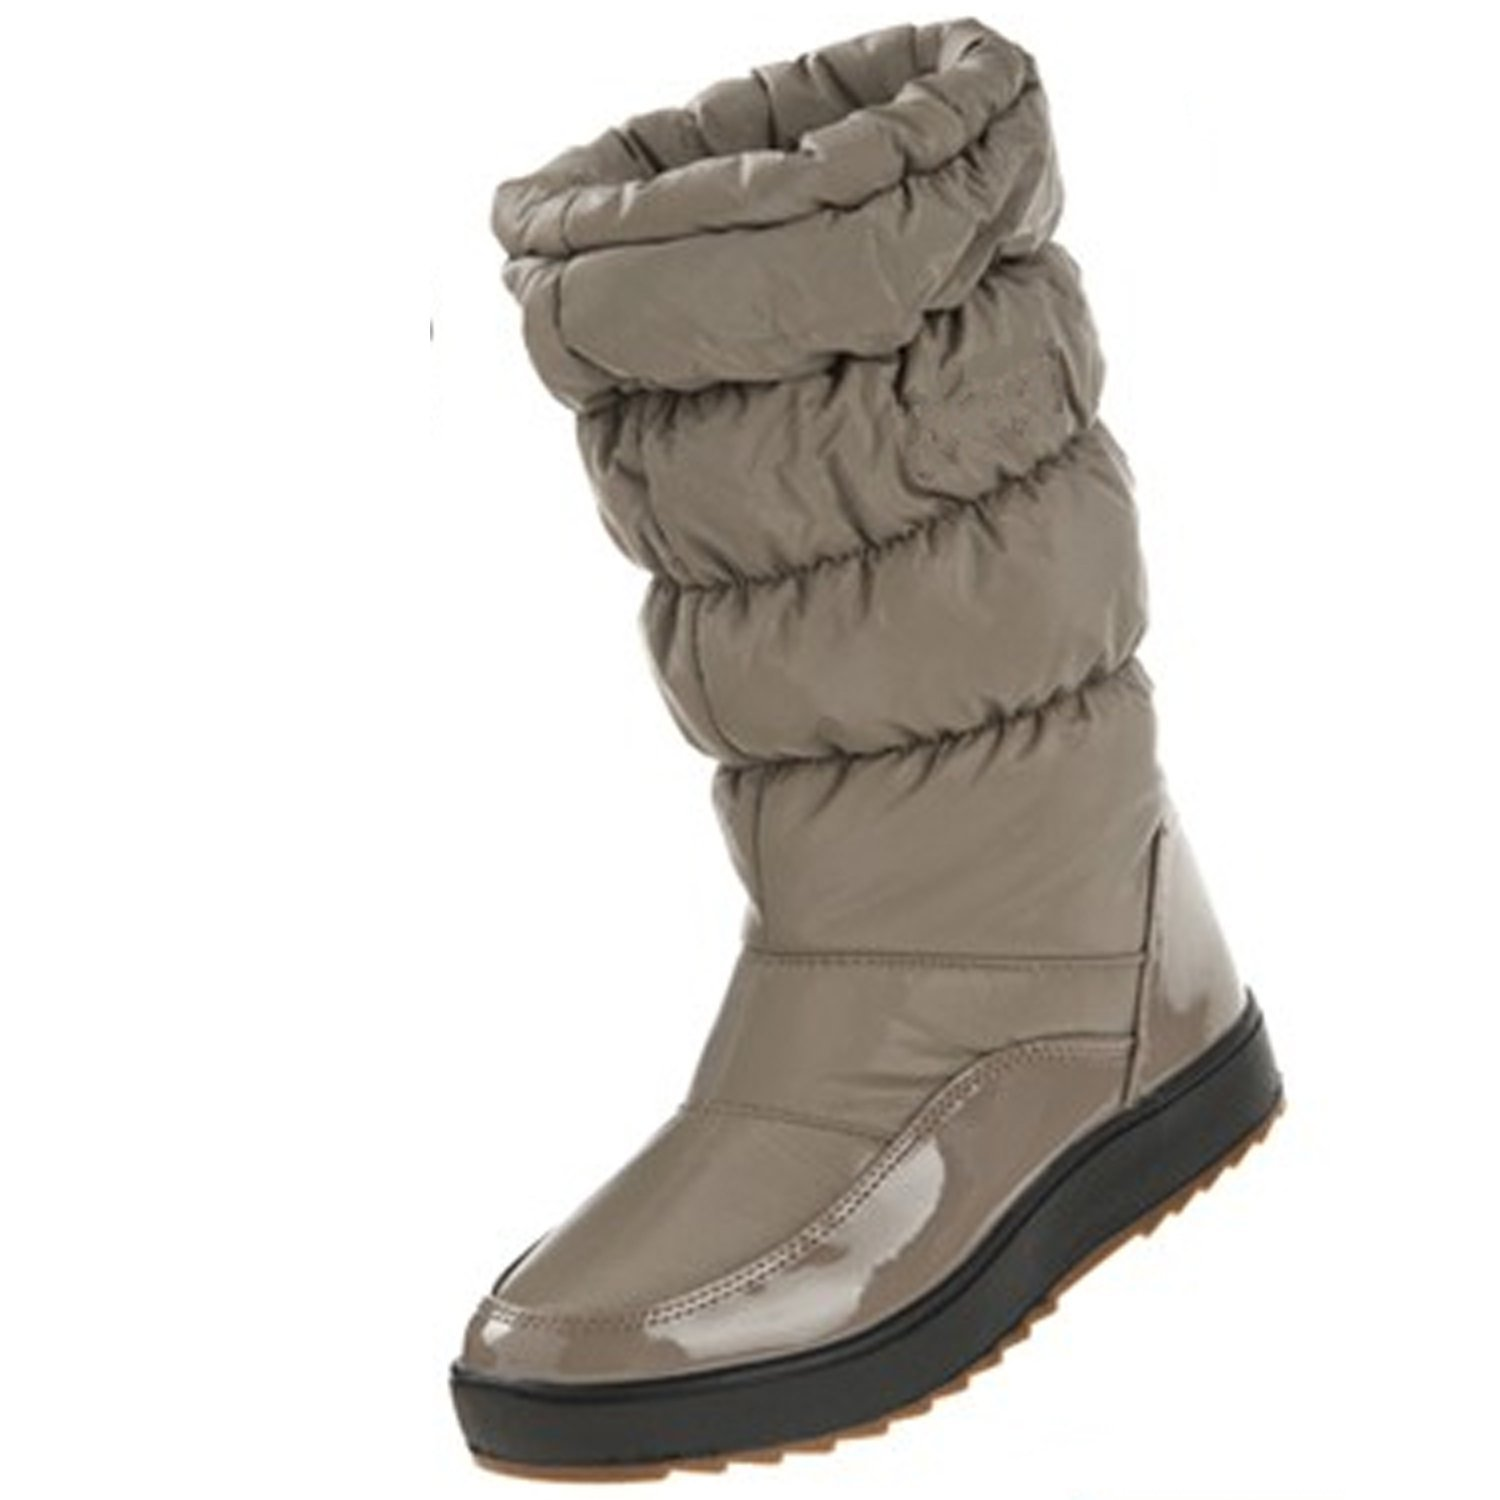 NOT100 Down Jacket Mid Calf Boots Water Resistant Smooth Upper Warm Winter Sneakers For Women Grey 6.5US